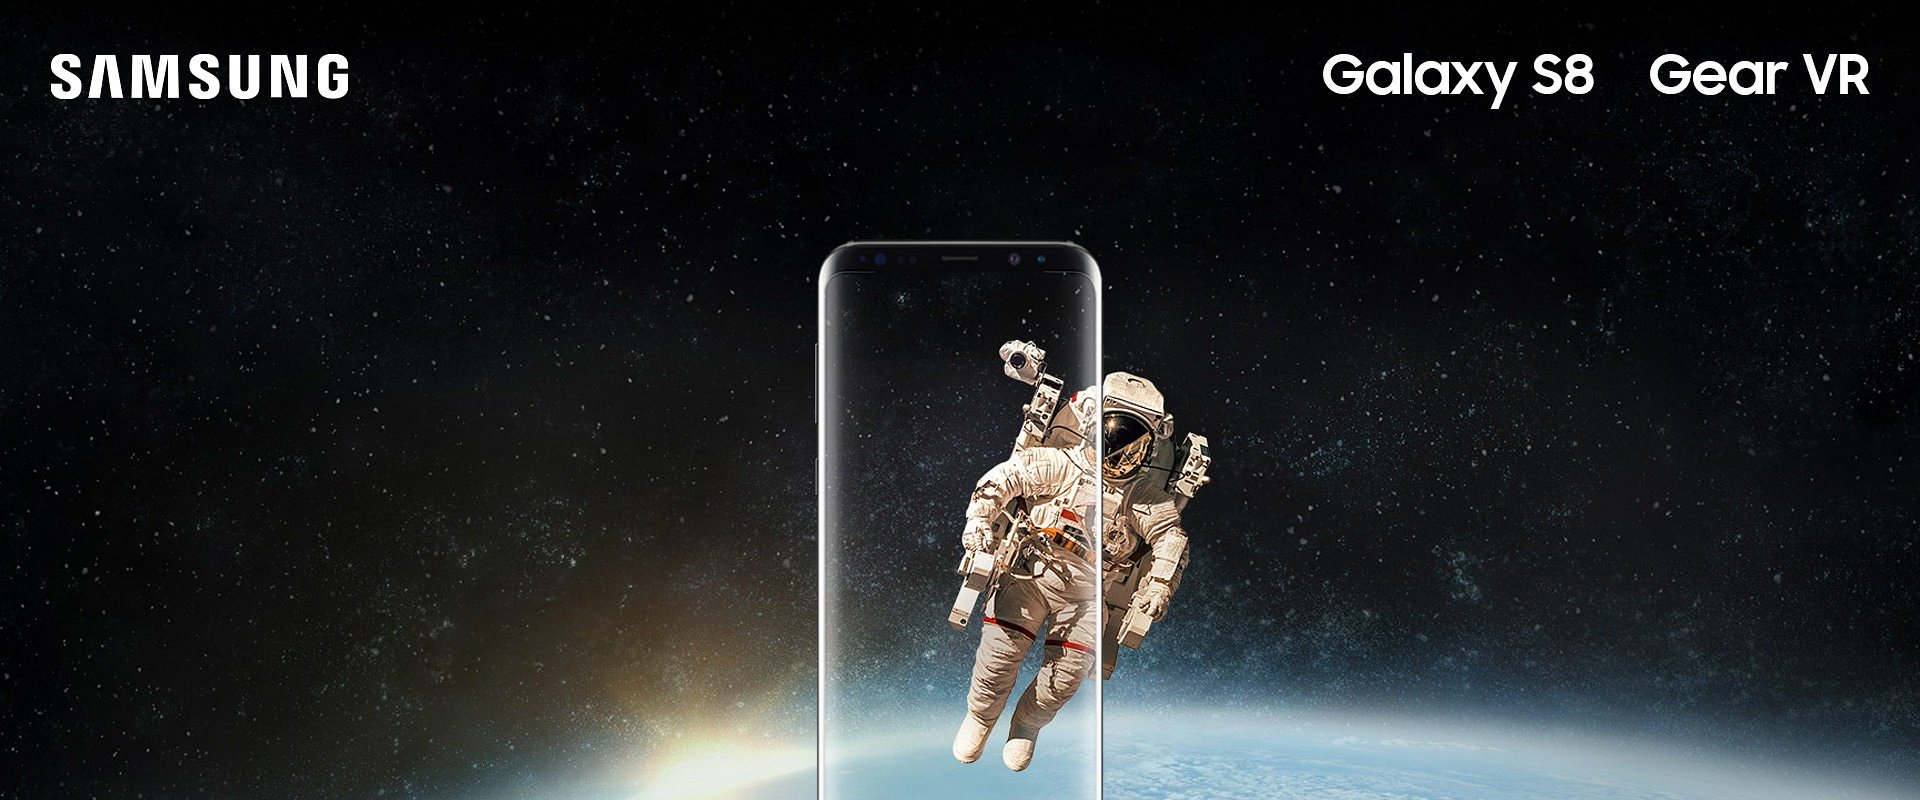 Samsung prezentuje: The Missed Spaceflight – Wyrusz w misję kosmiczną z Galaxy S8 i Gear VR